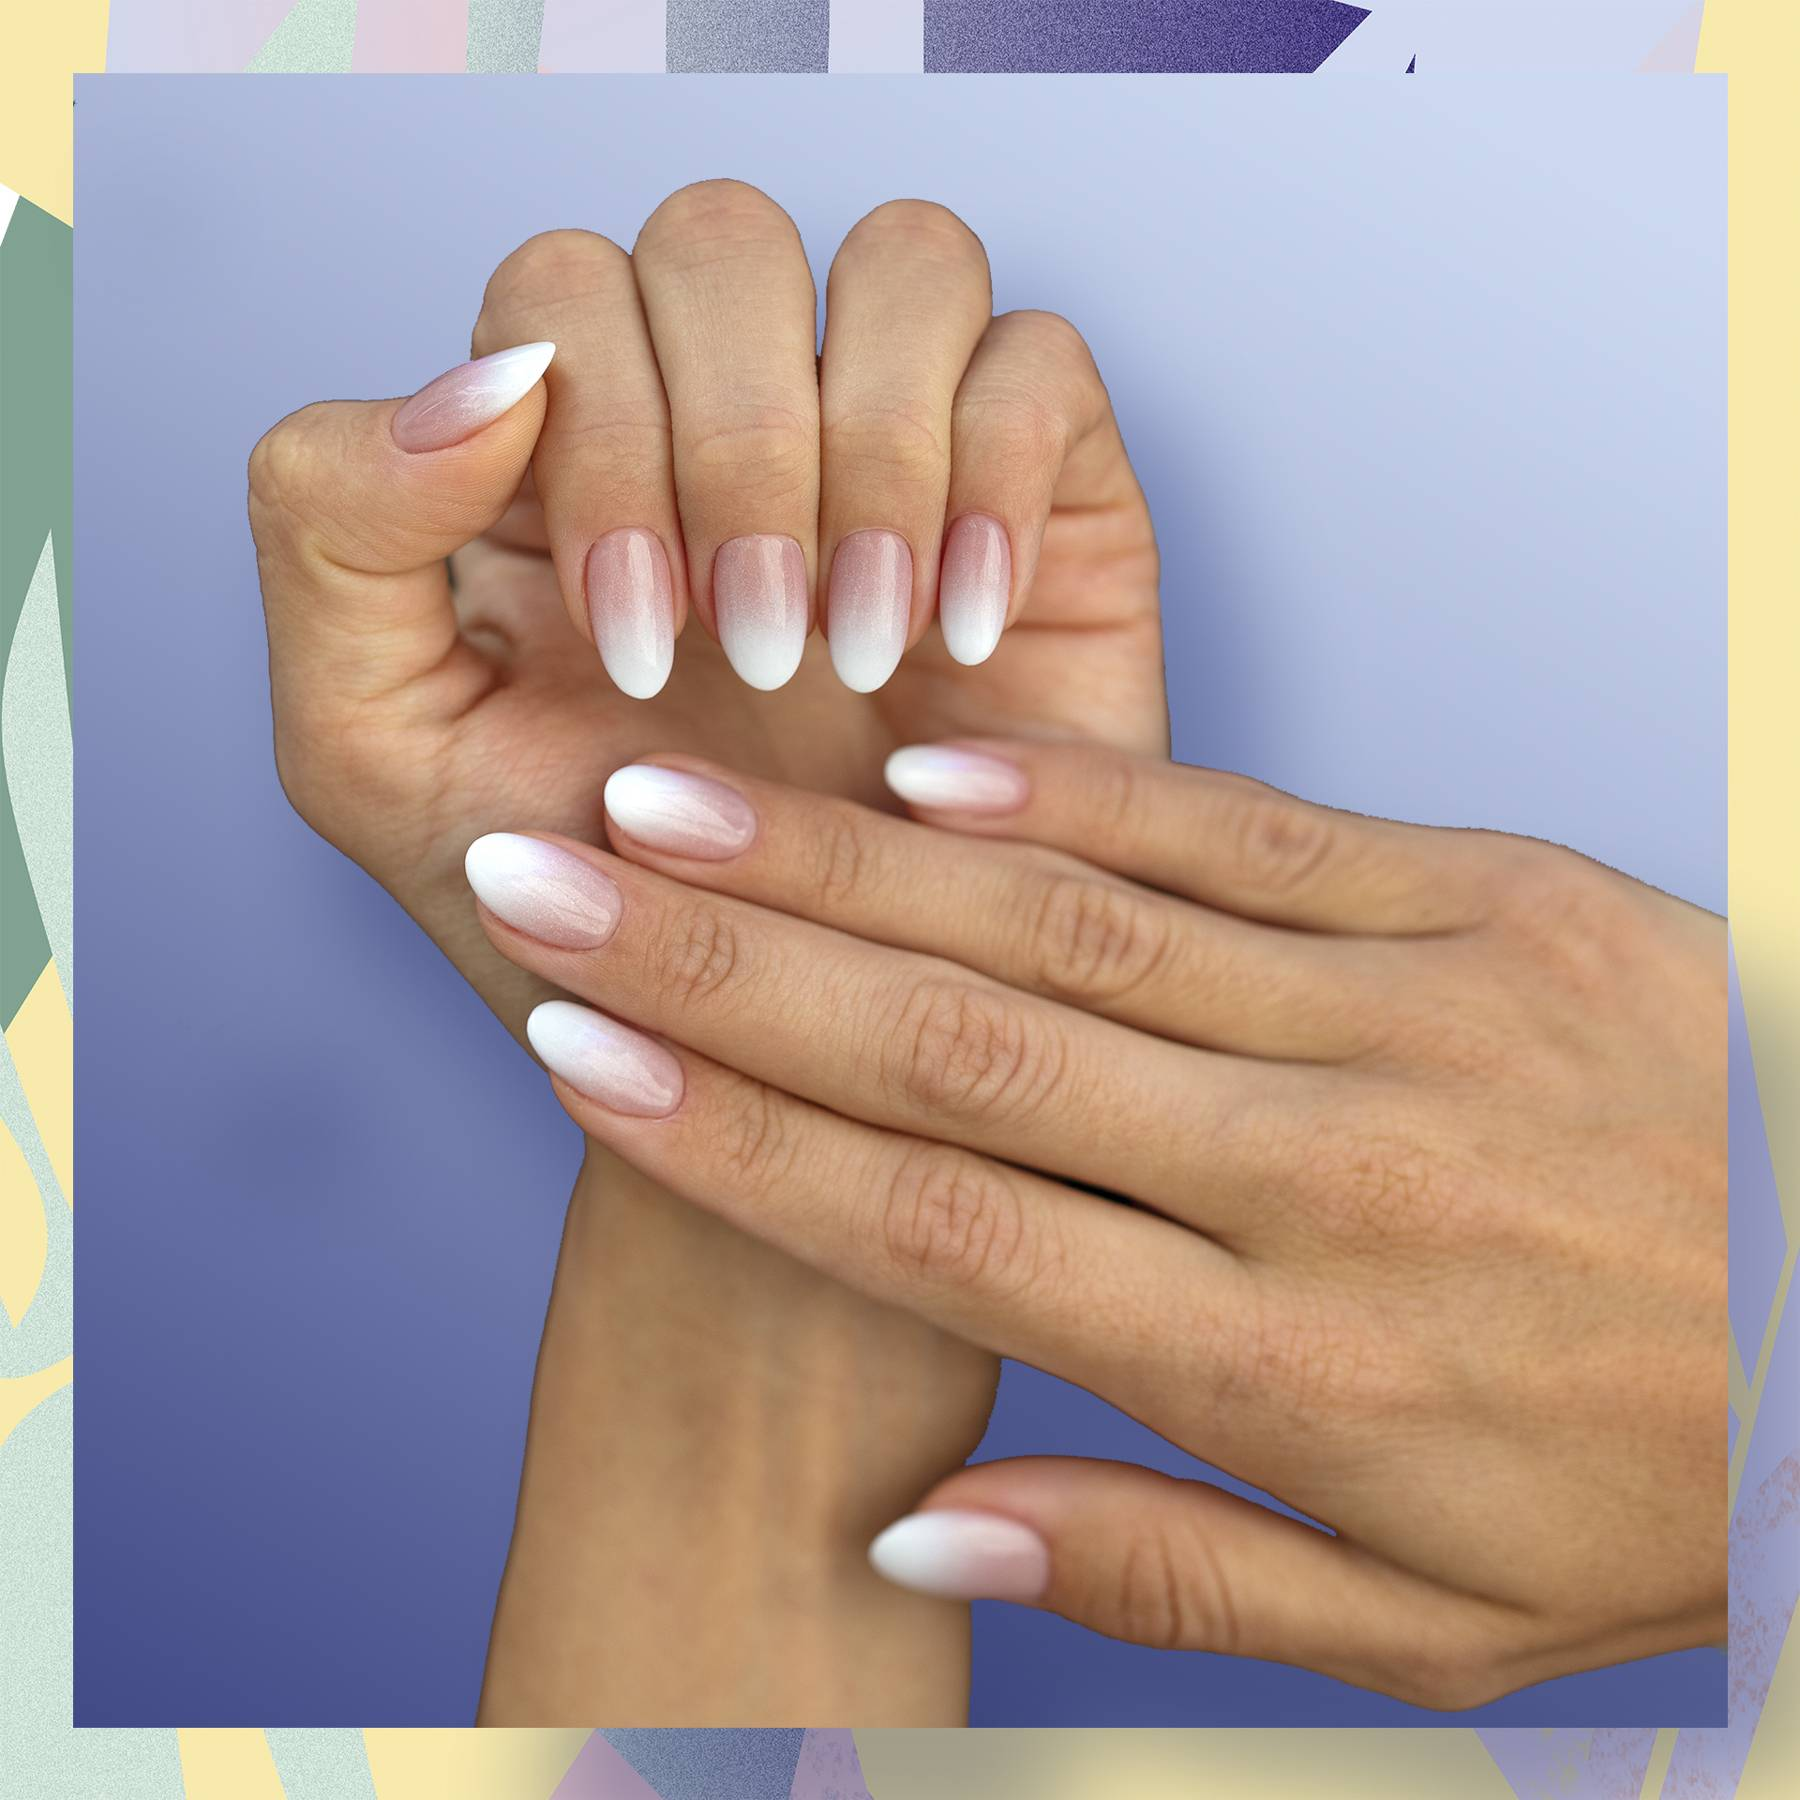 Ombré Nails: Designs & Ideas For Ombre Nail Art | Glamour UK